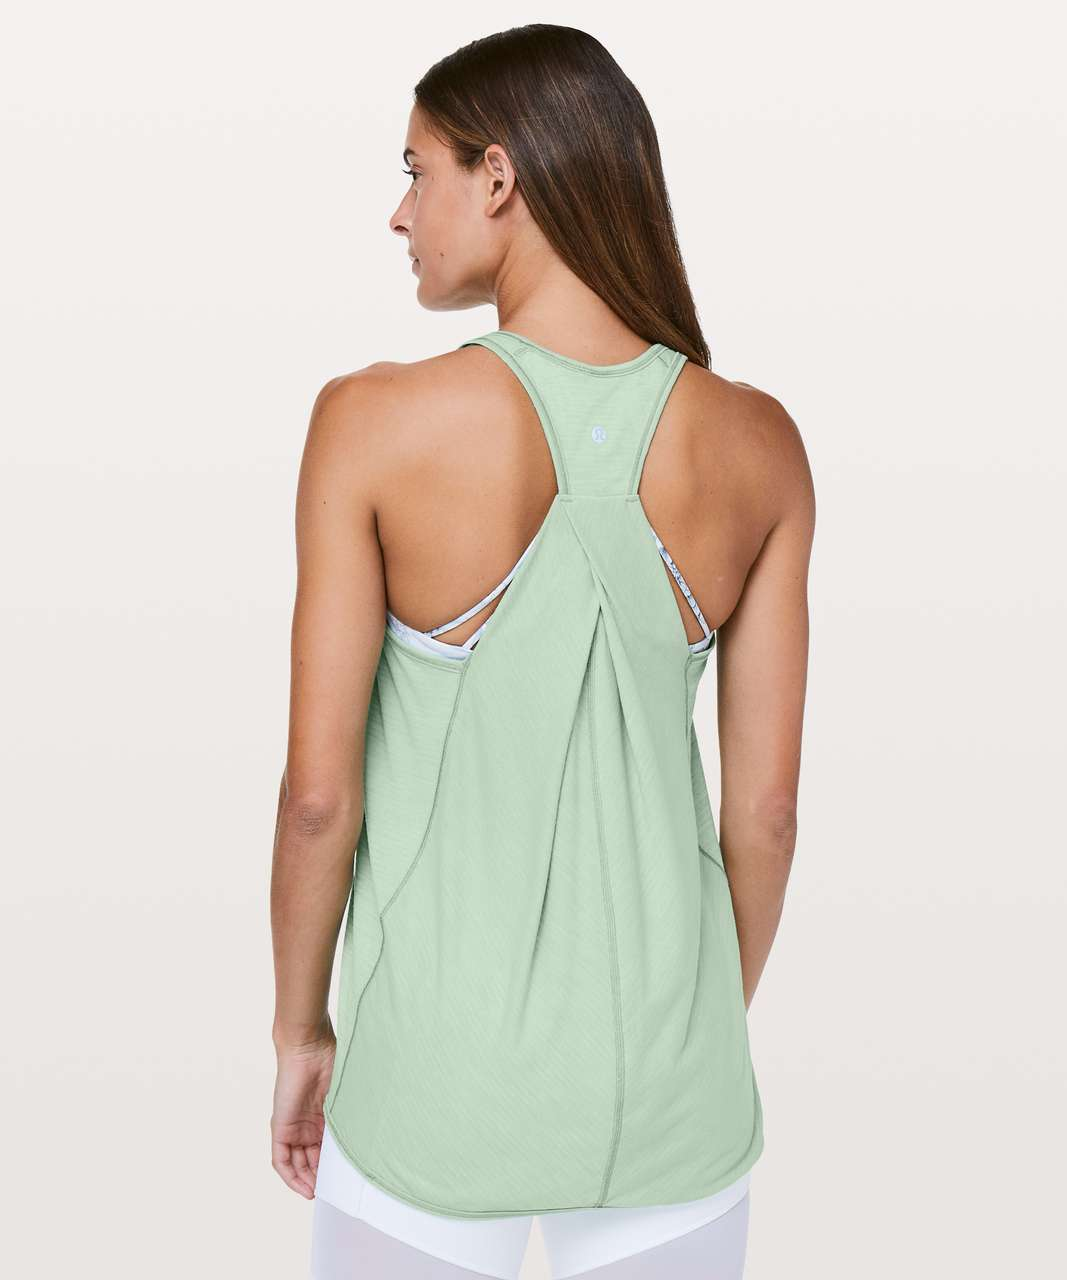 b0c33a9f3dcd73 Lululemon Essential Tank - Heathered Opal Green - lulu fanatics